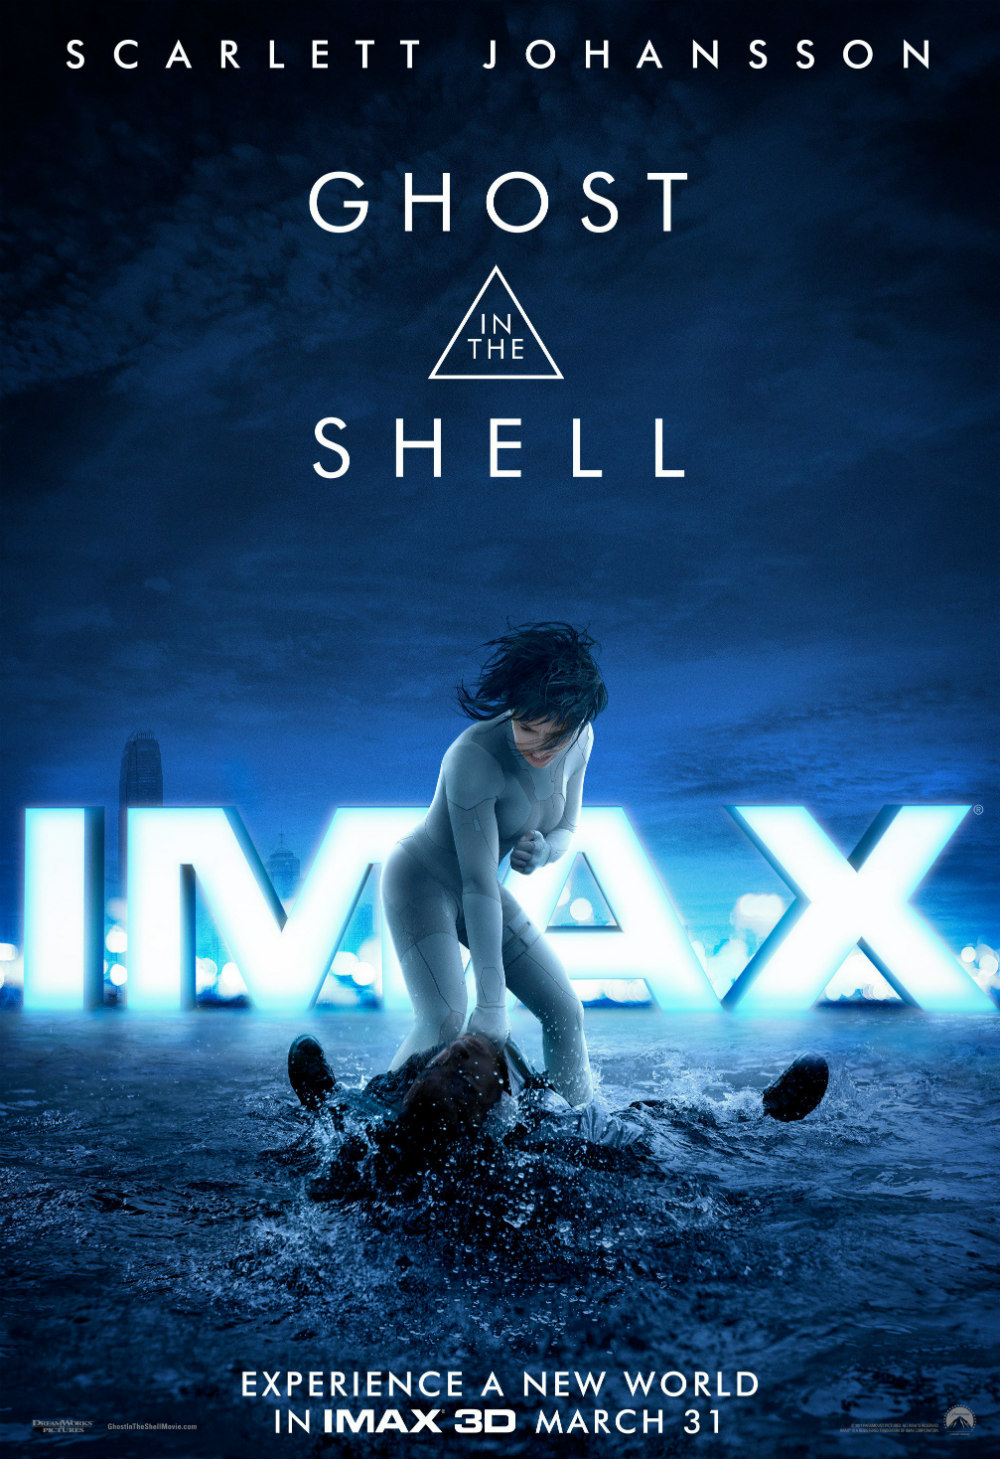 Ghost in the Shell IMAX